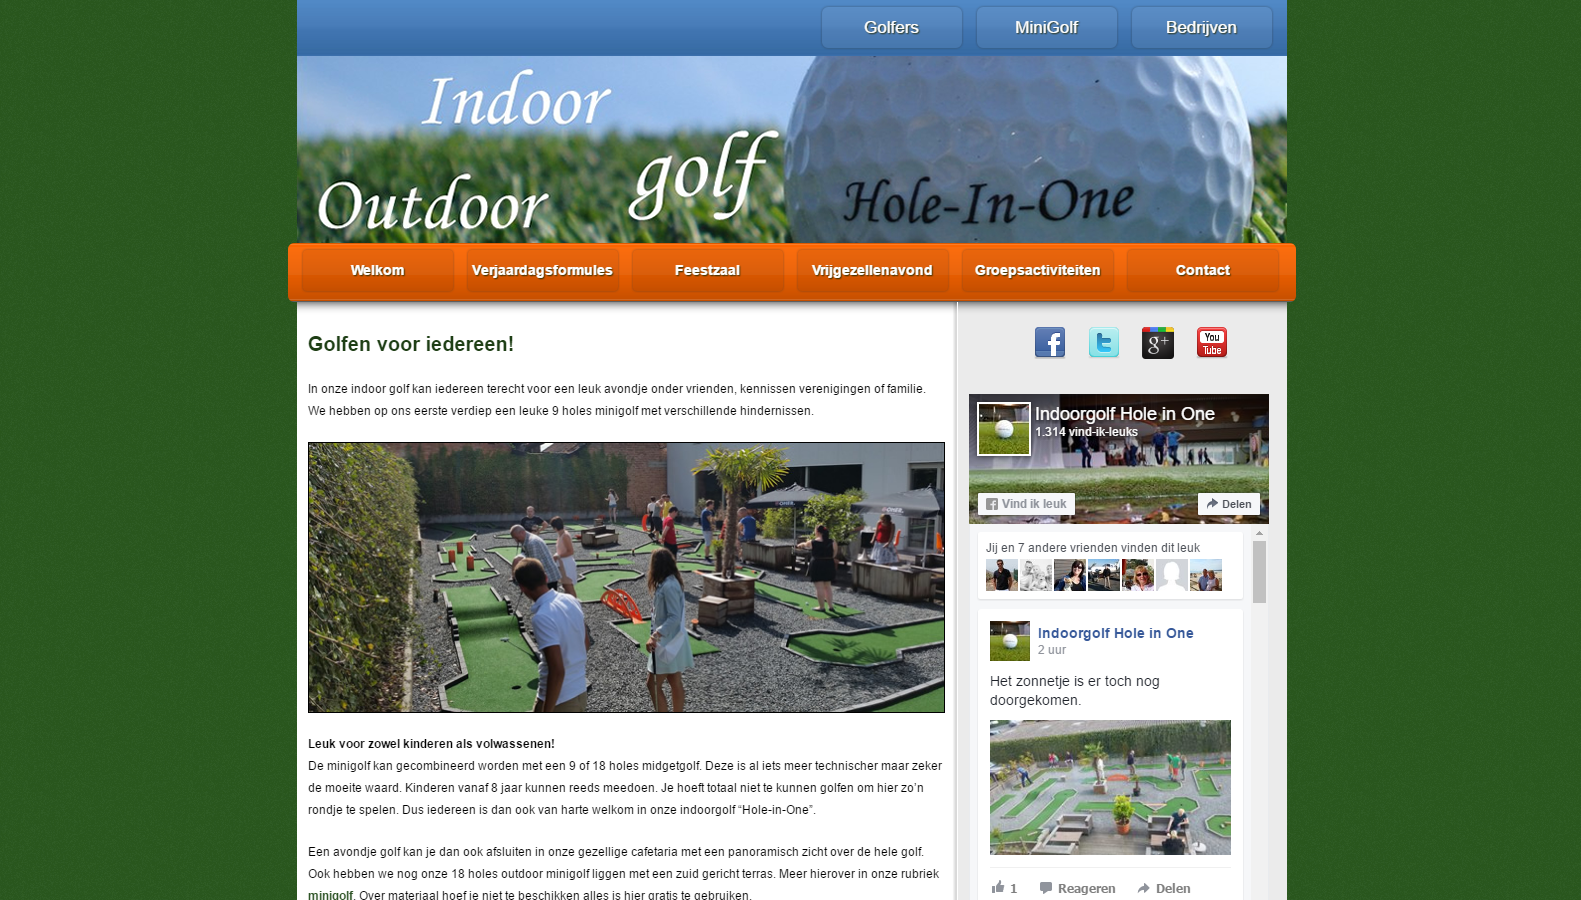 Indoorgolf Hole in One